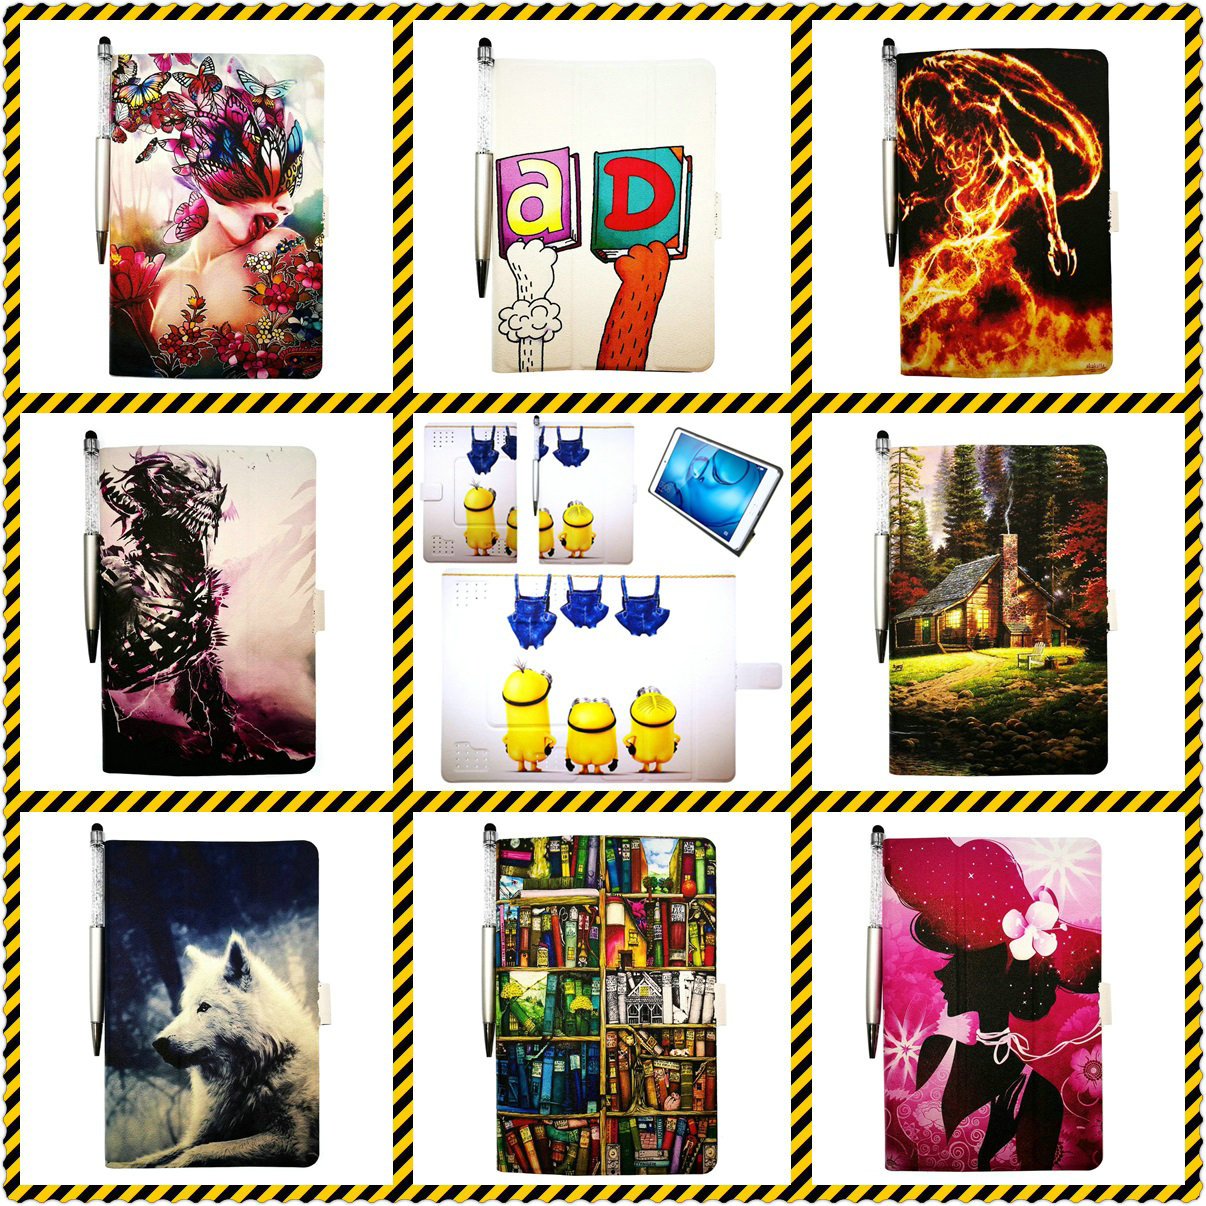 Tablet Case for Bb-Mobile Techno W8.0 3g I800az Q800ay Case Cover Couqe Hulle Funda Shell Custodie все для bb mobile